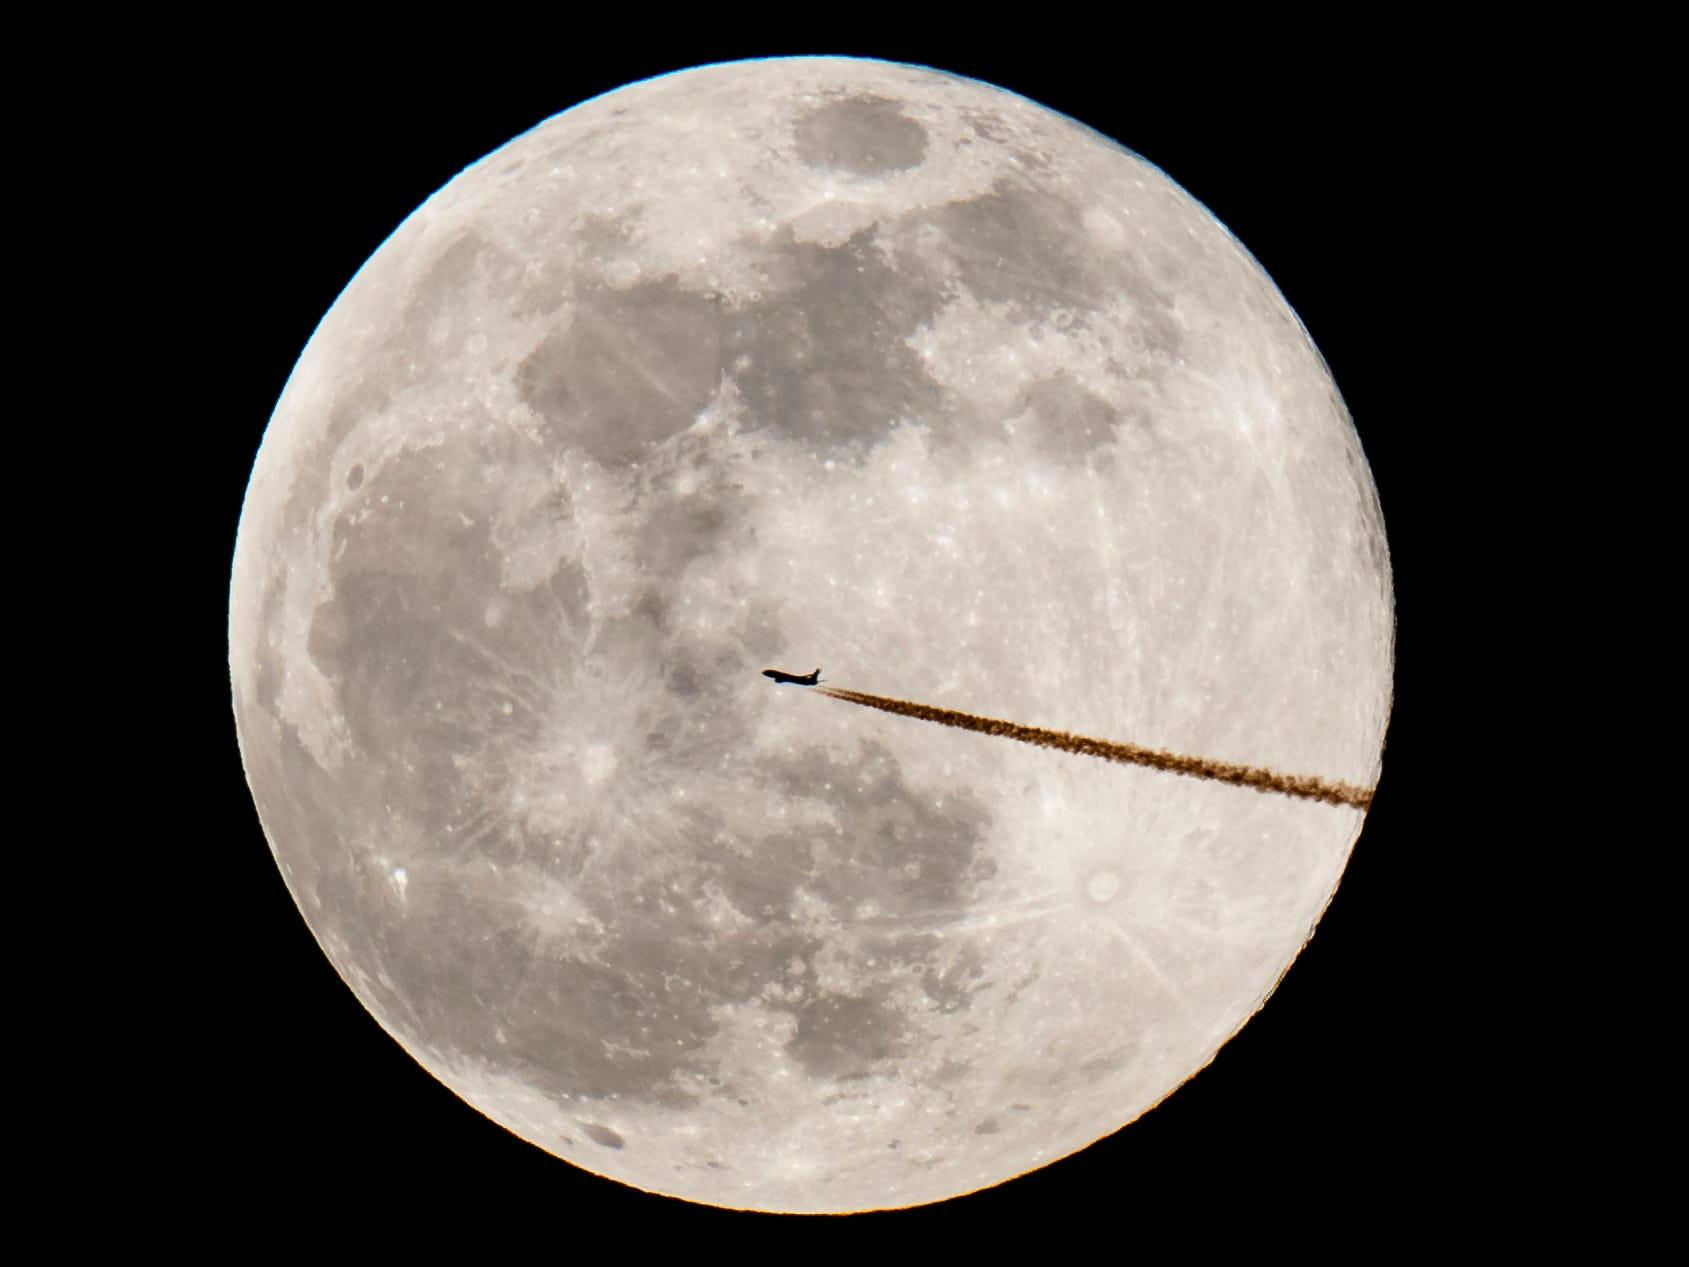 A plane flies in front of a supermoon on Feb.19, 2019, in Nuremberg, Germany.